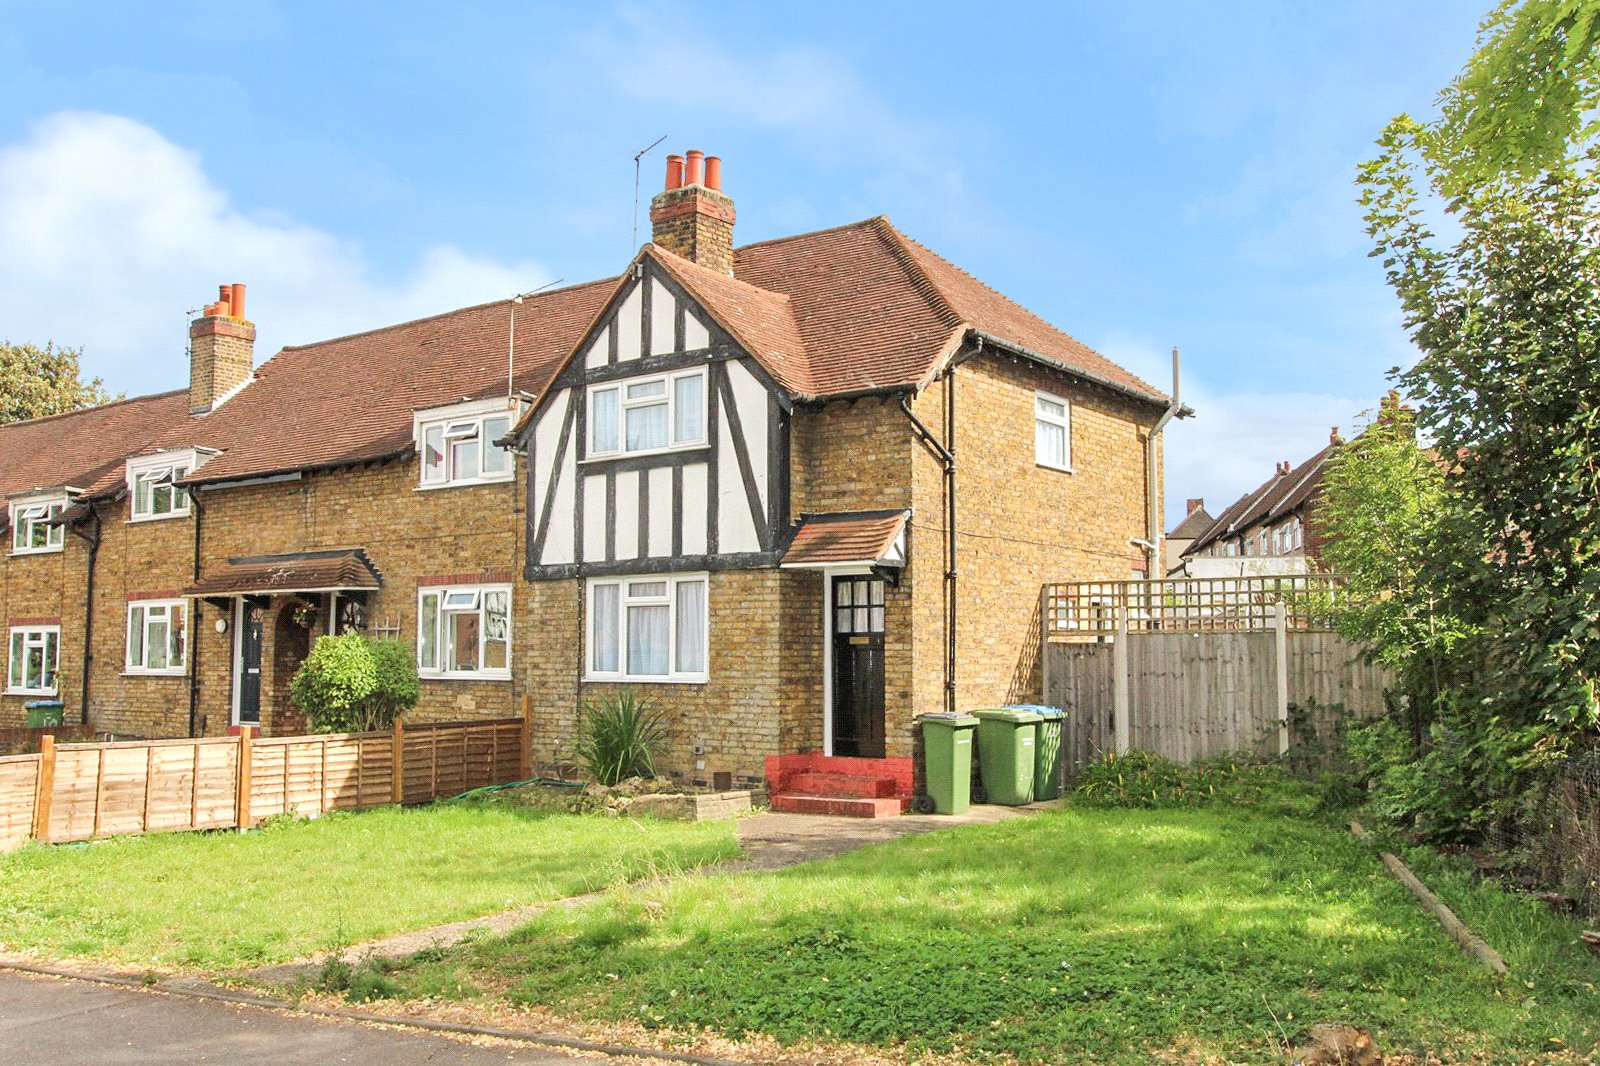 Glasbrook Road, Eltham, SE9